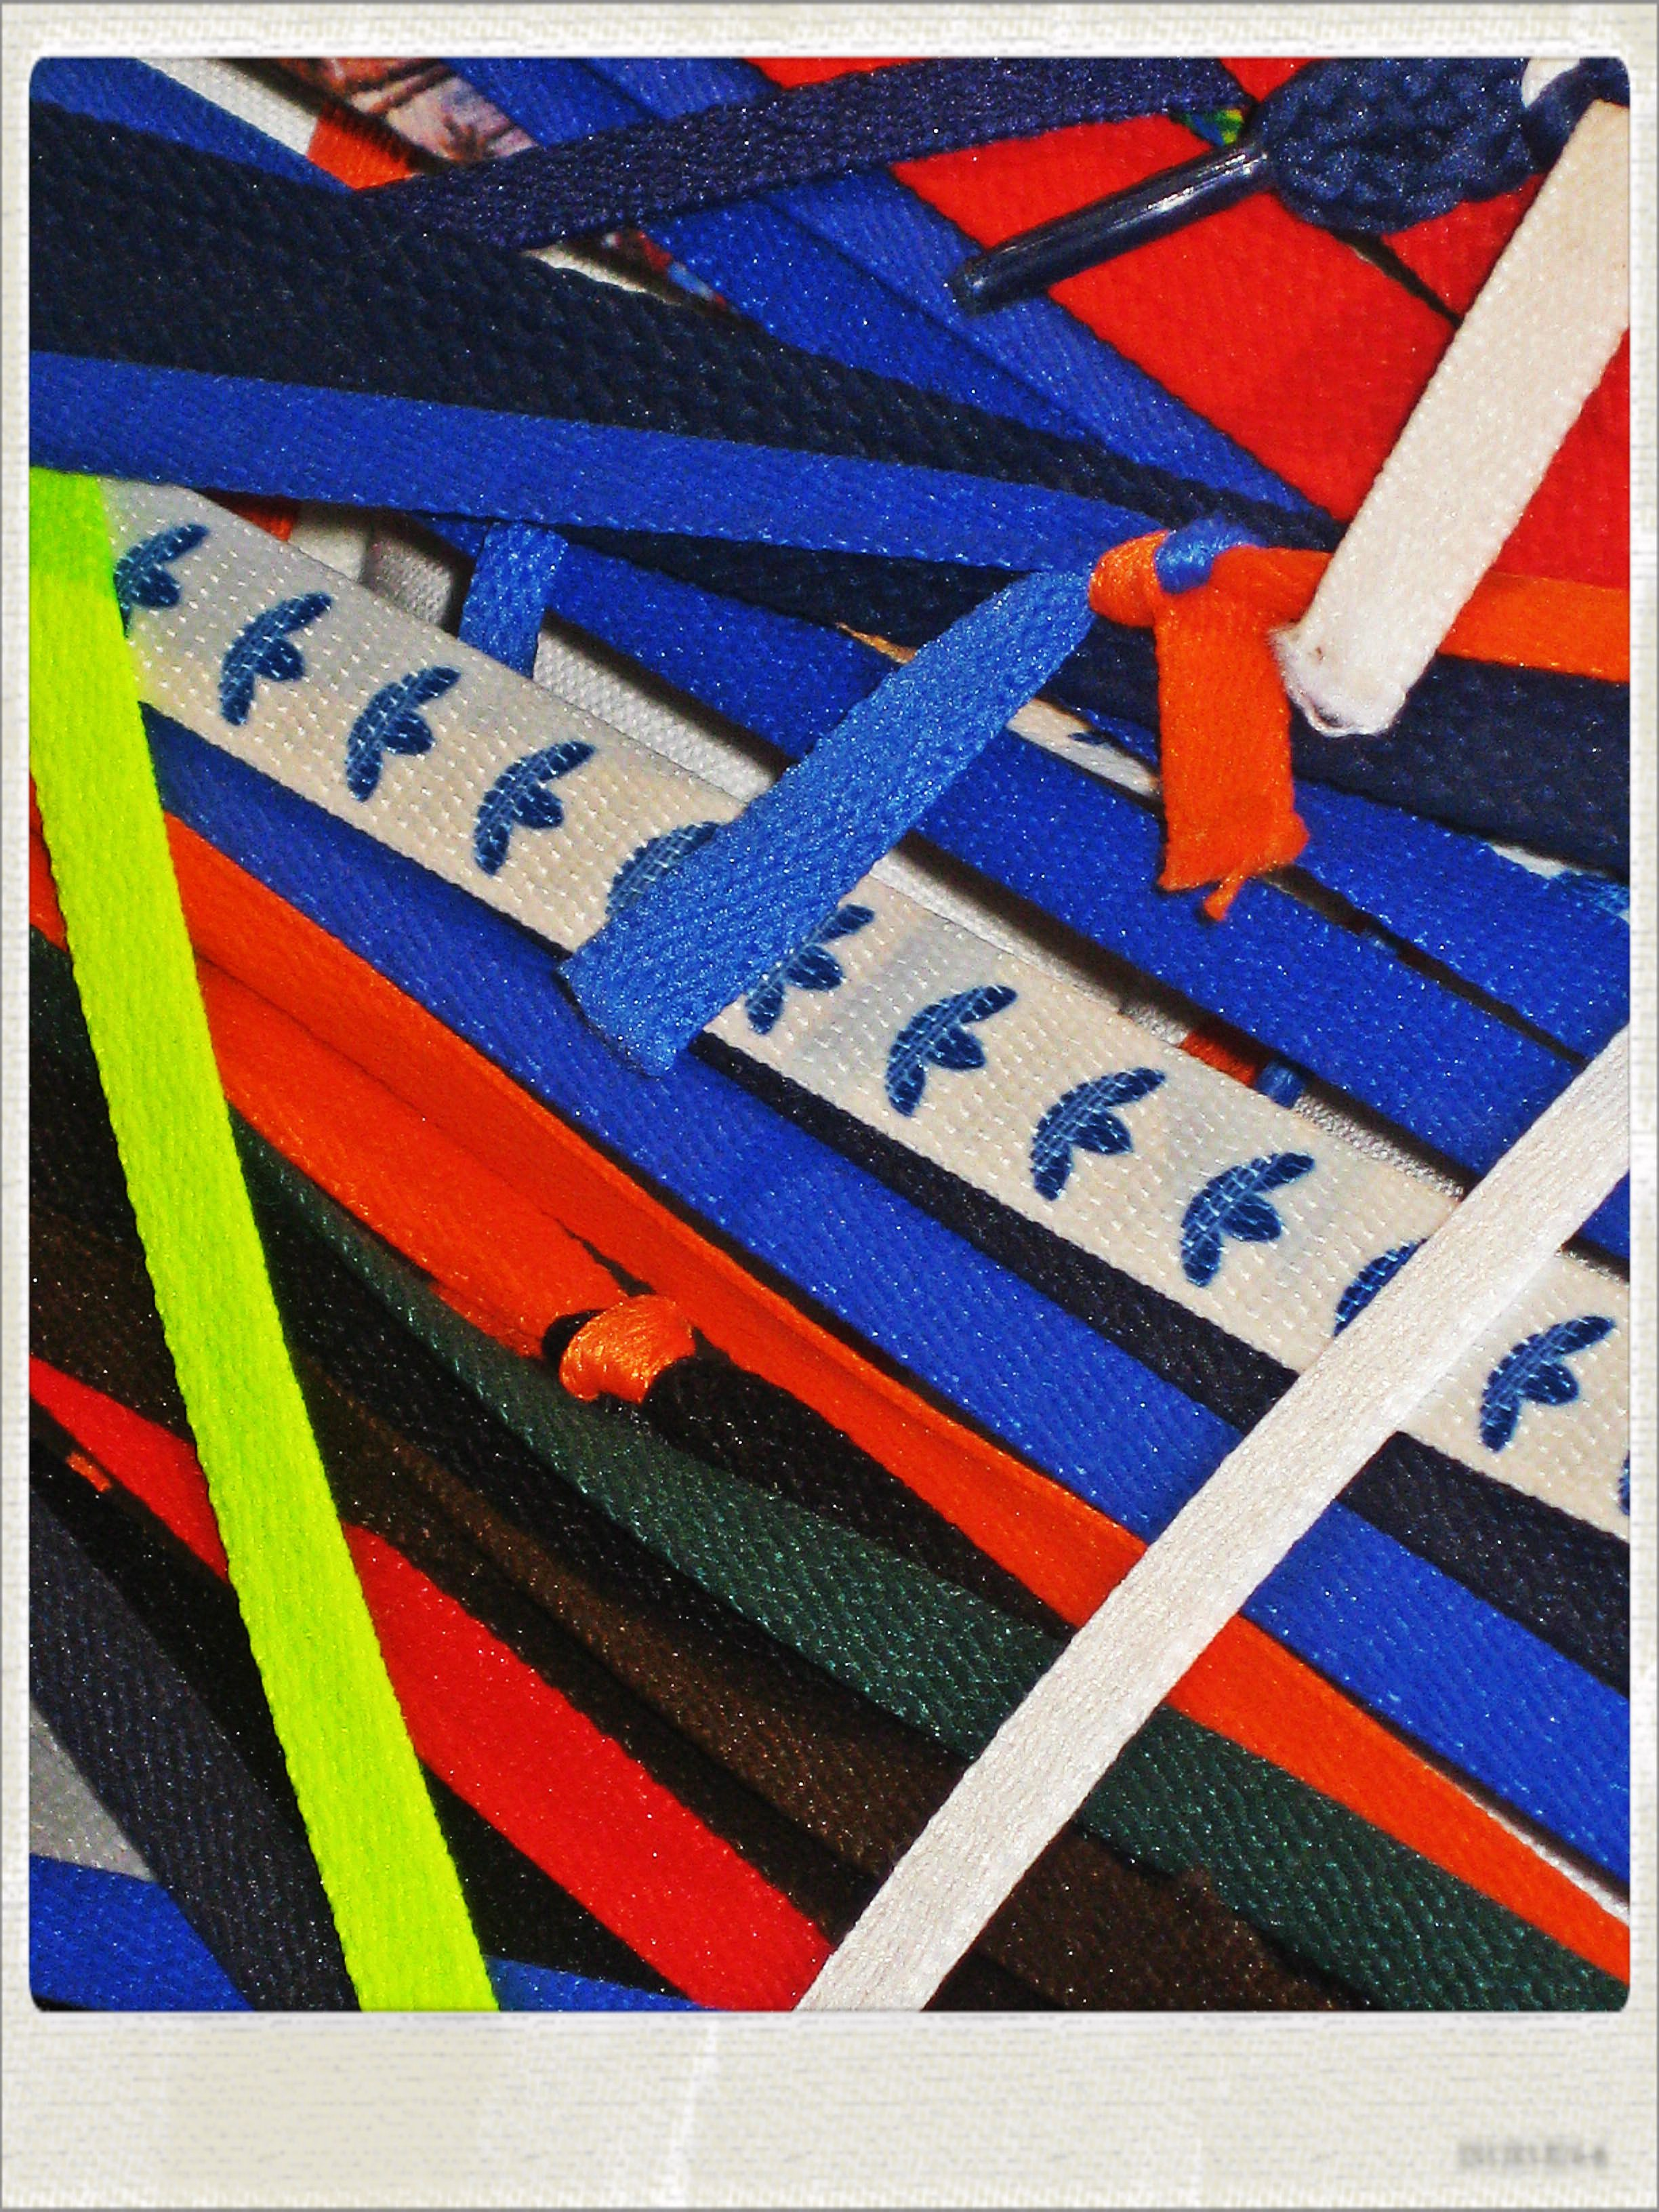 Laces Adidas Group Careers Lace Adidas Eu Flag Country Flags